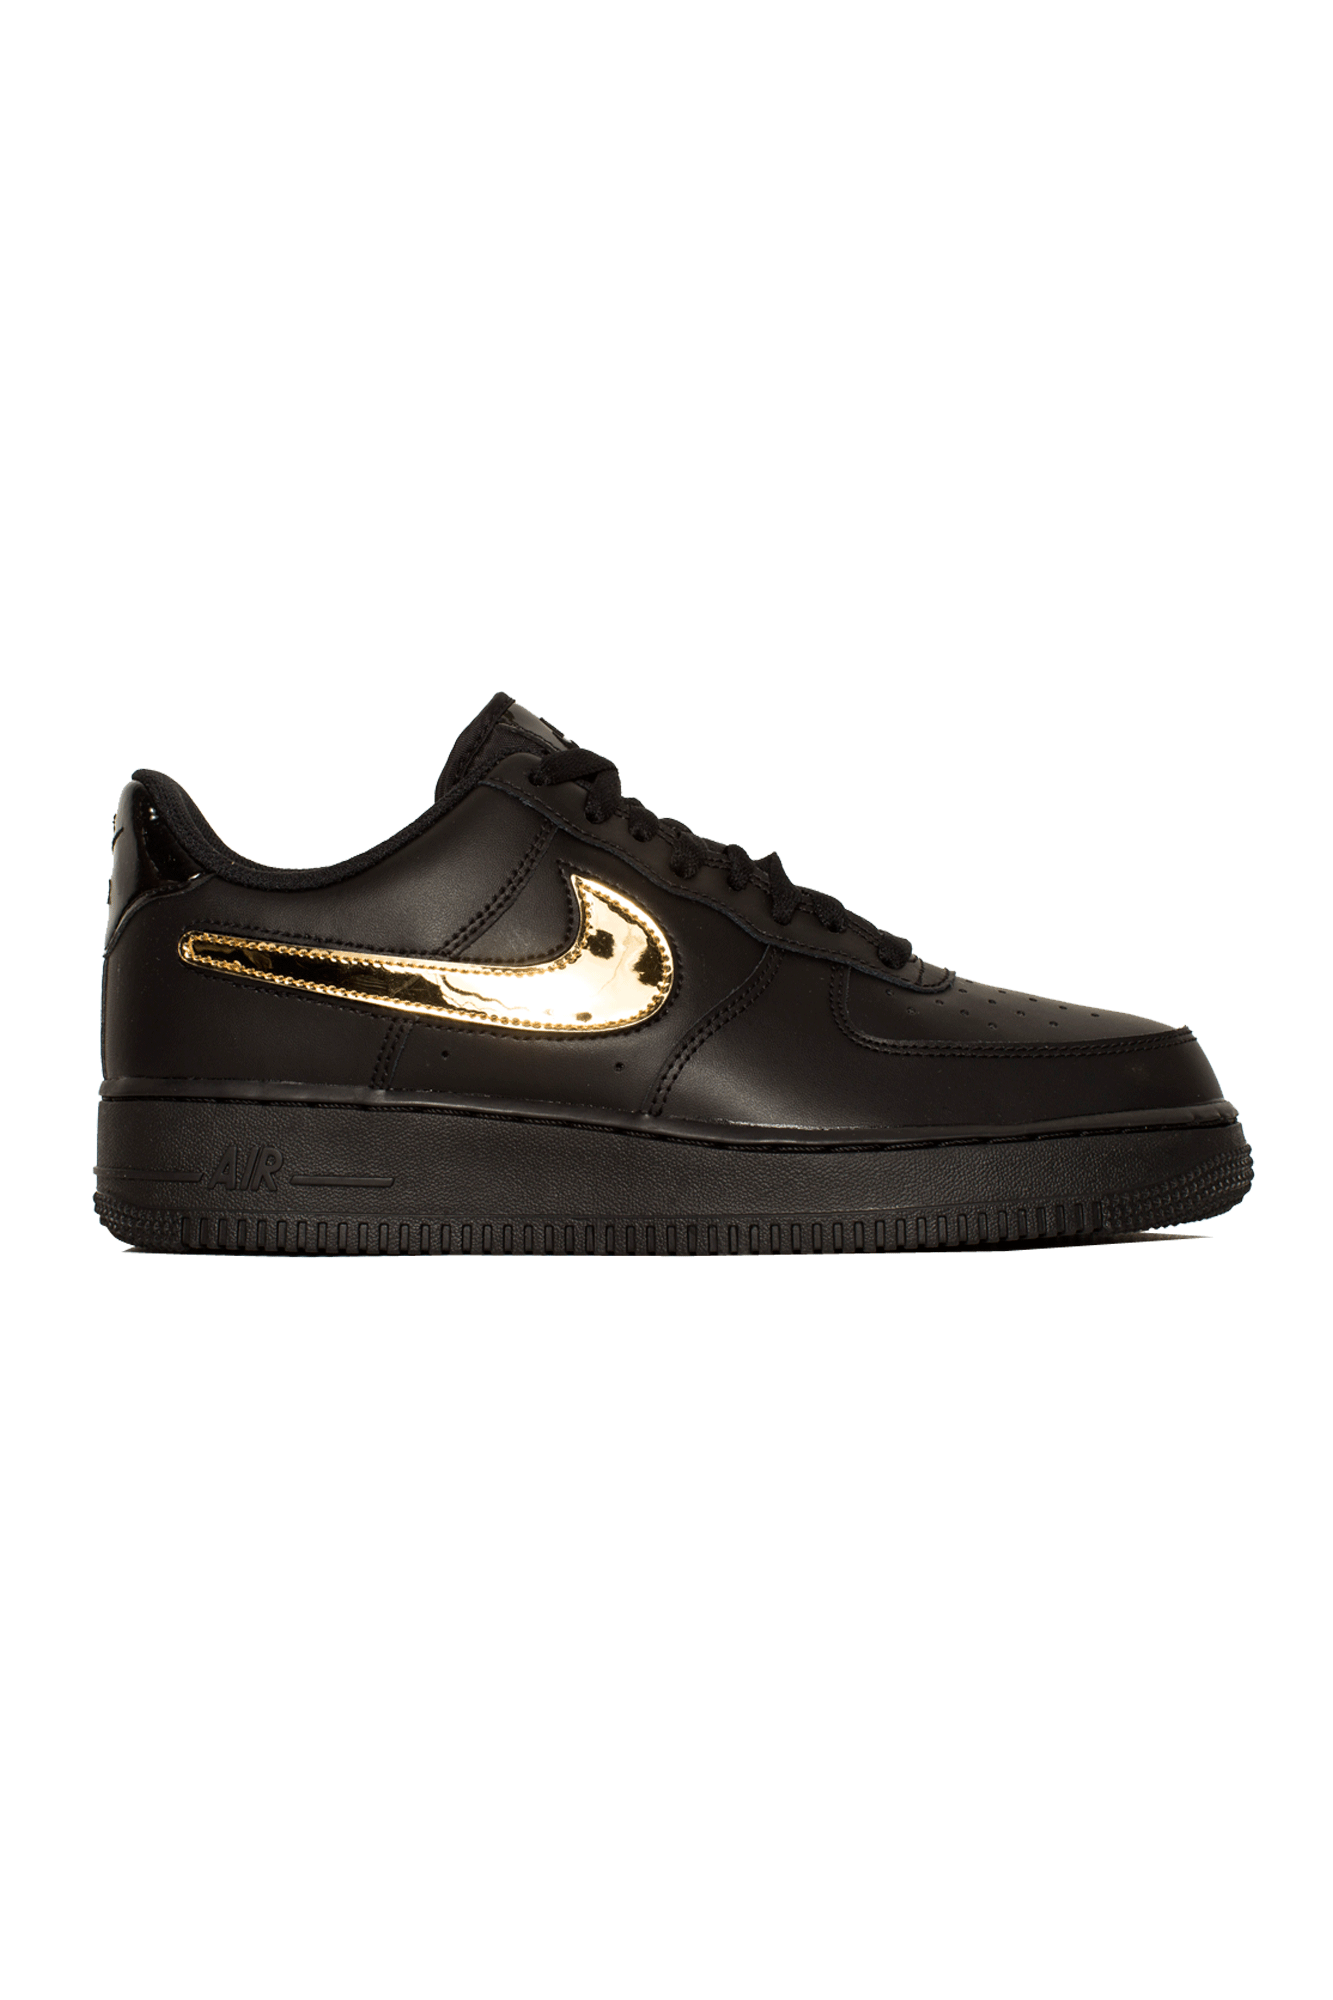 AIR FORCE 1 '07 LV8 3 Black